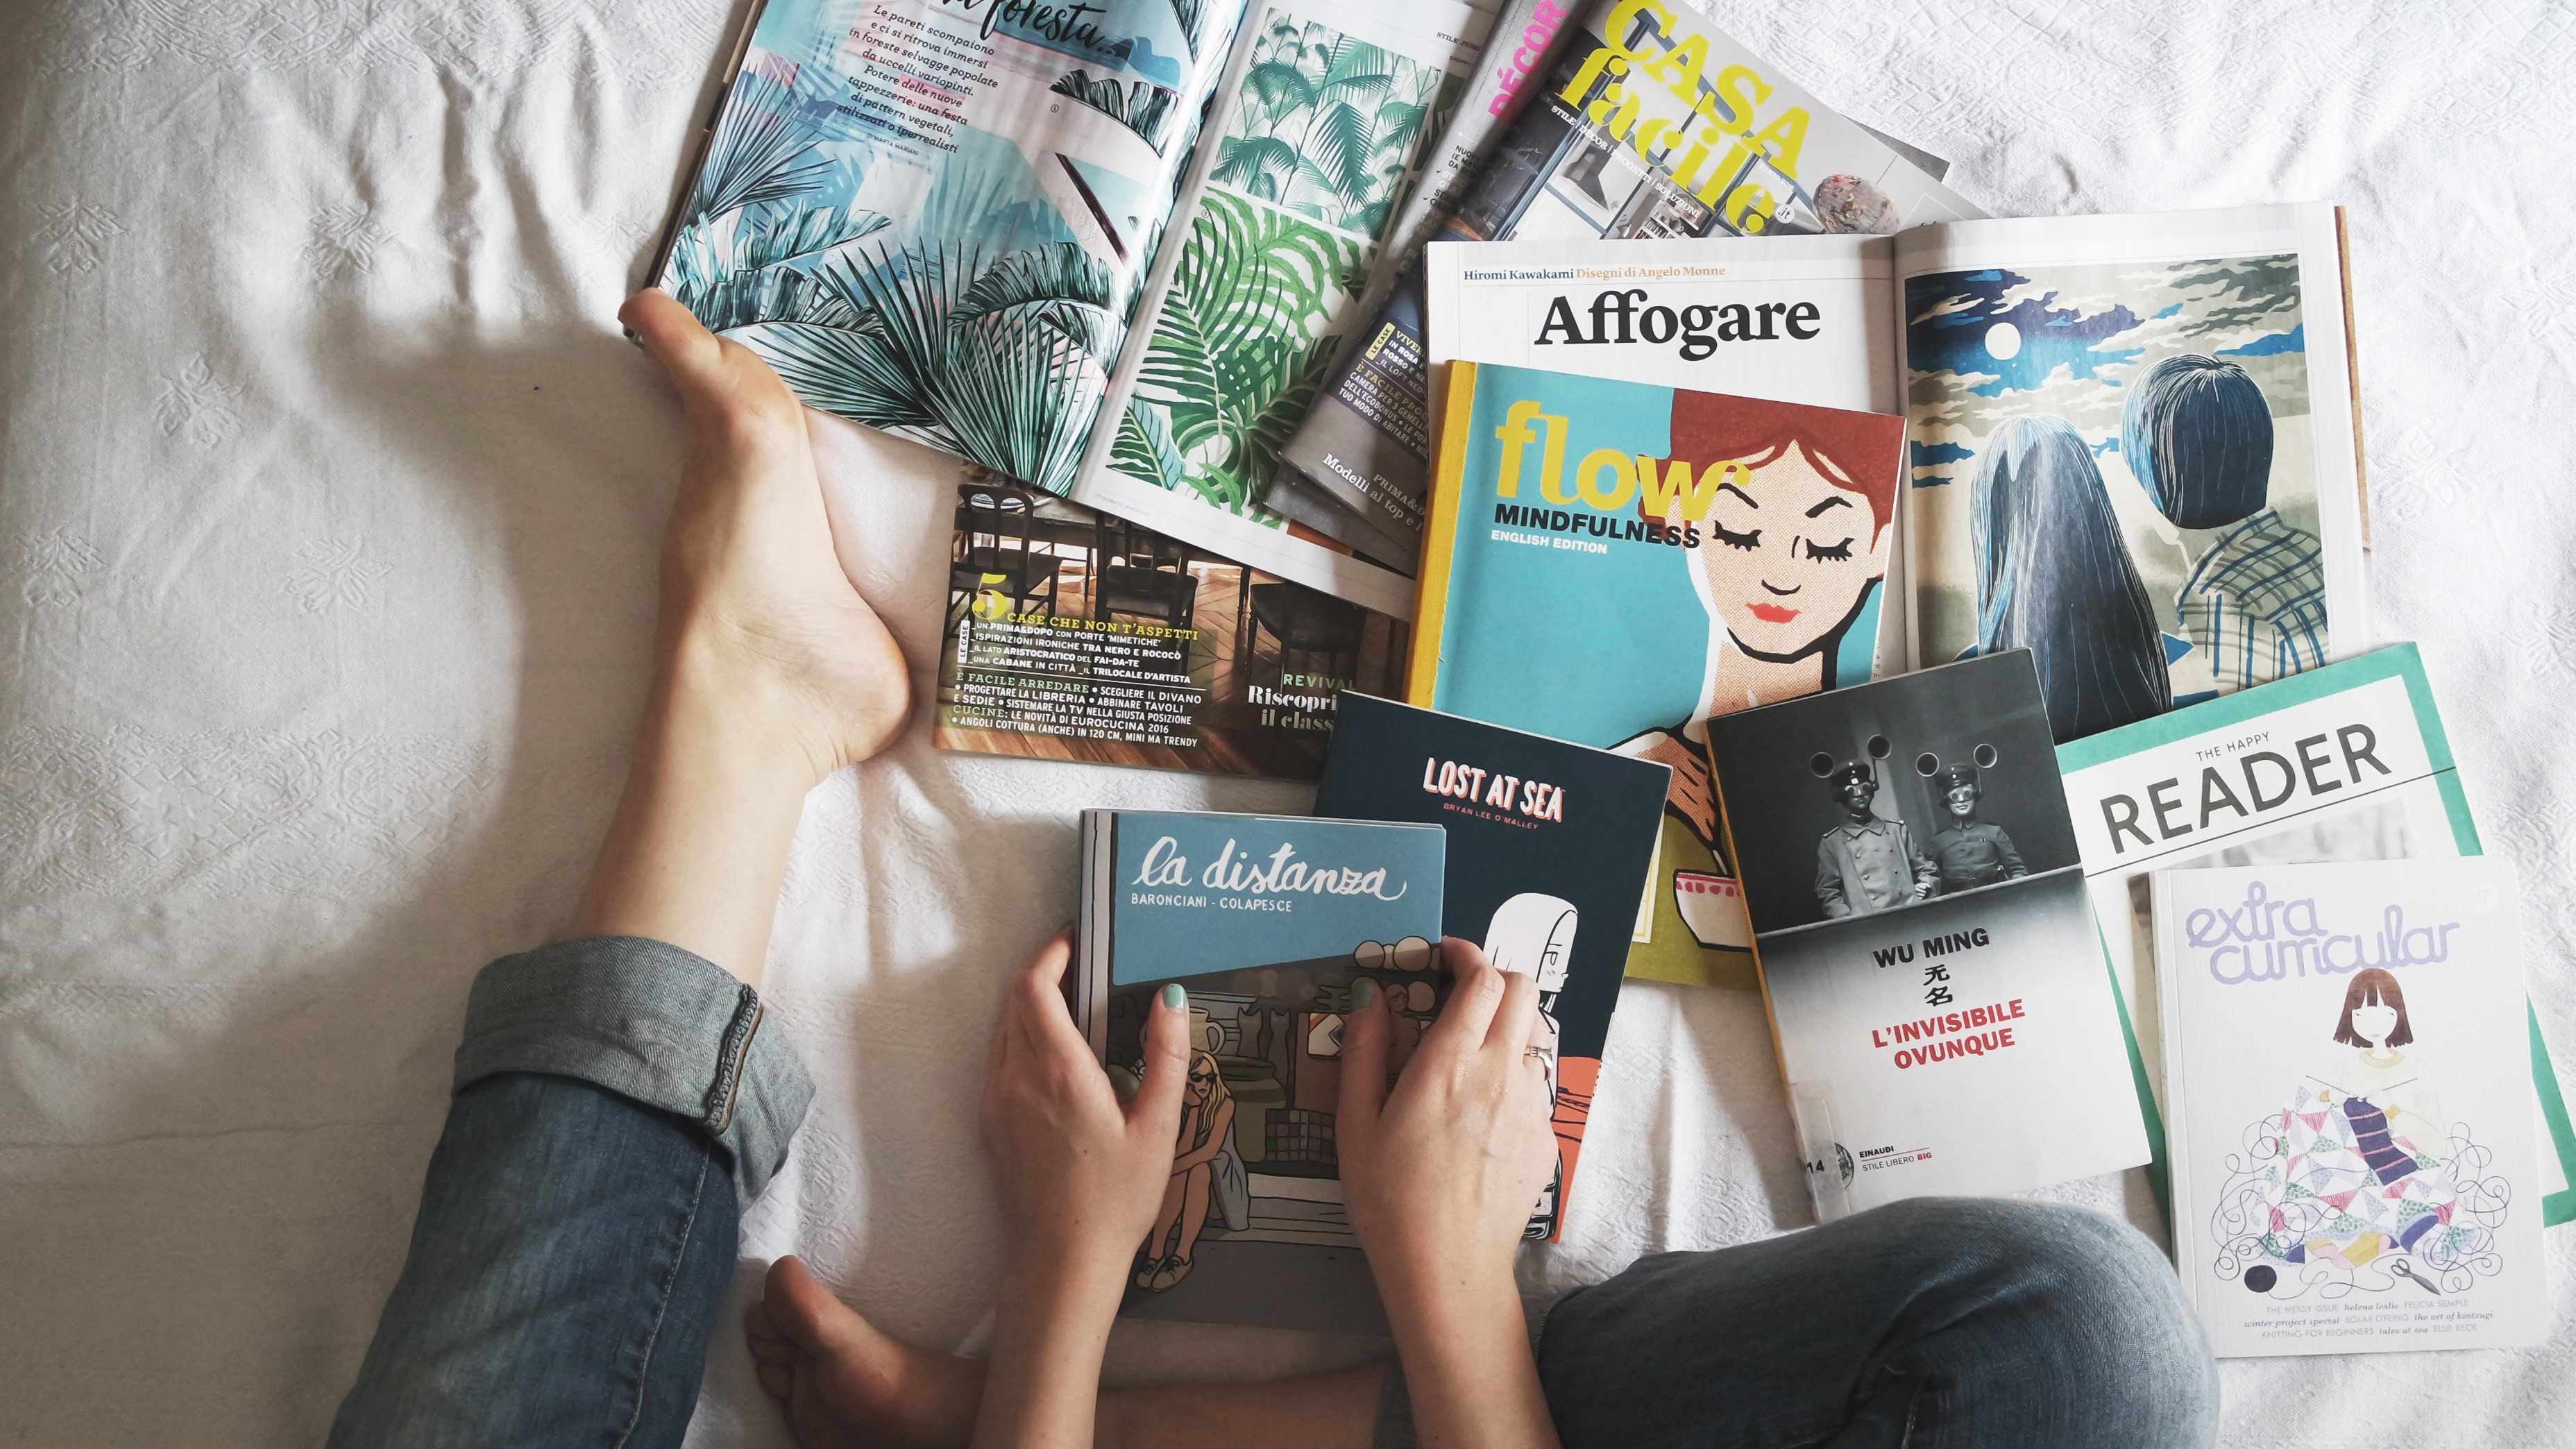 reading-books-and-magazines-in-bed